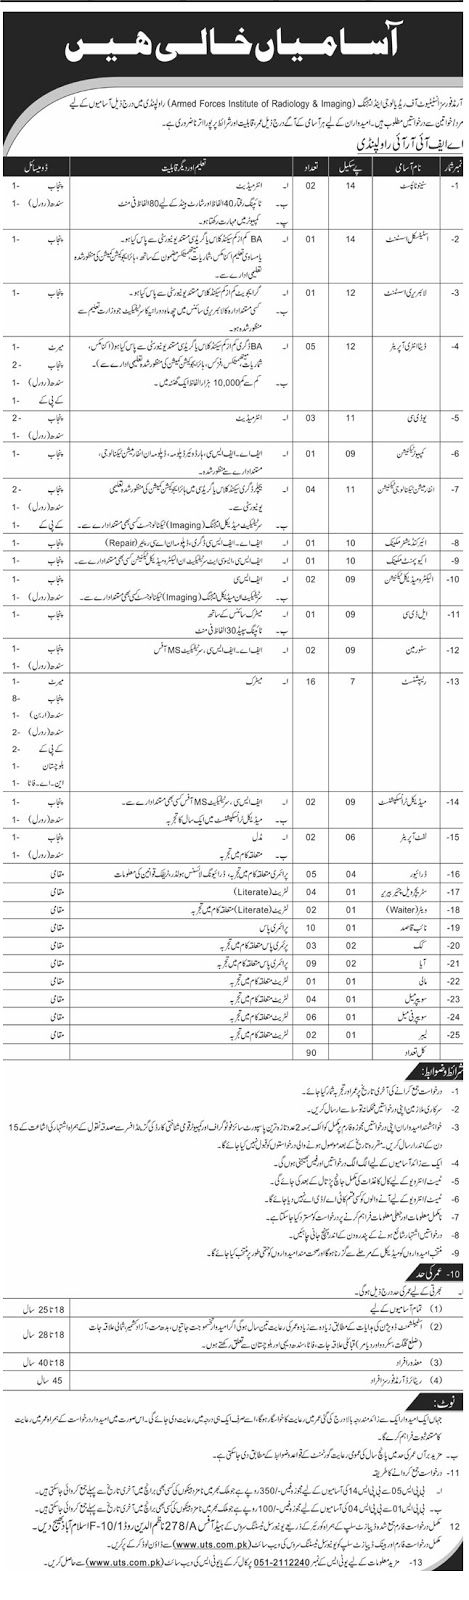 Armed Forces Institute Of Radiology And Imaging Jobs